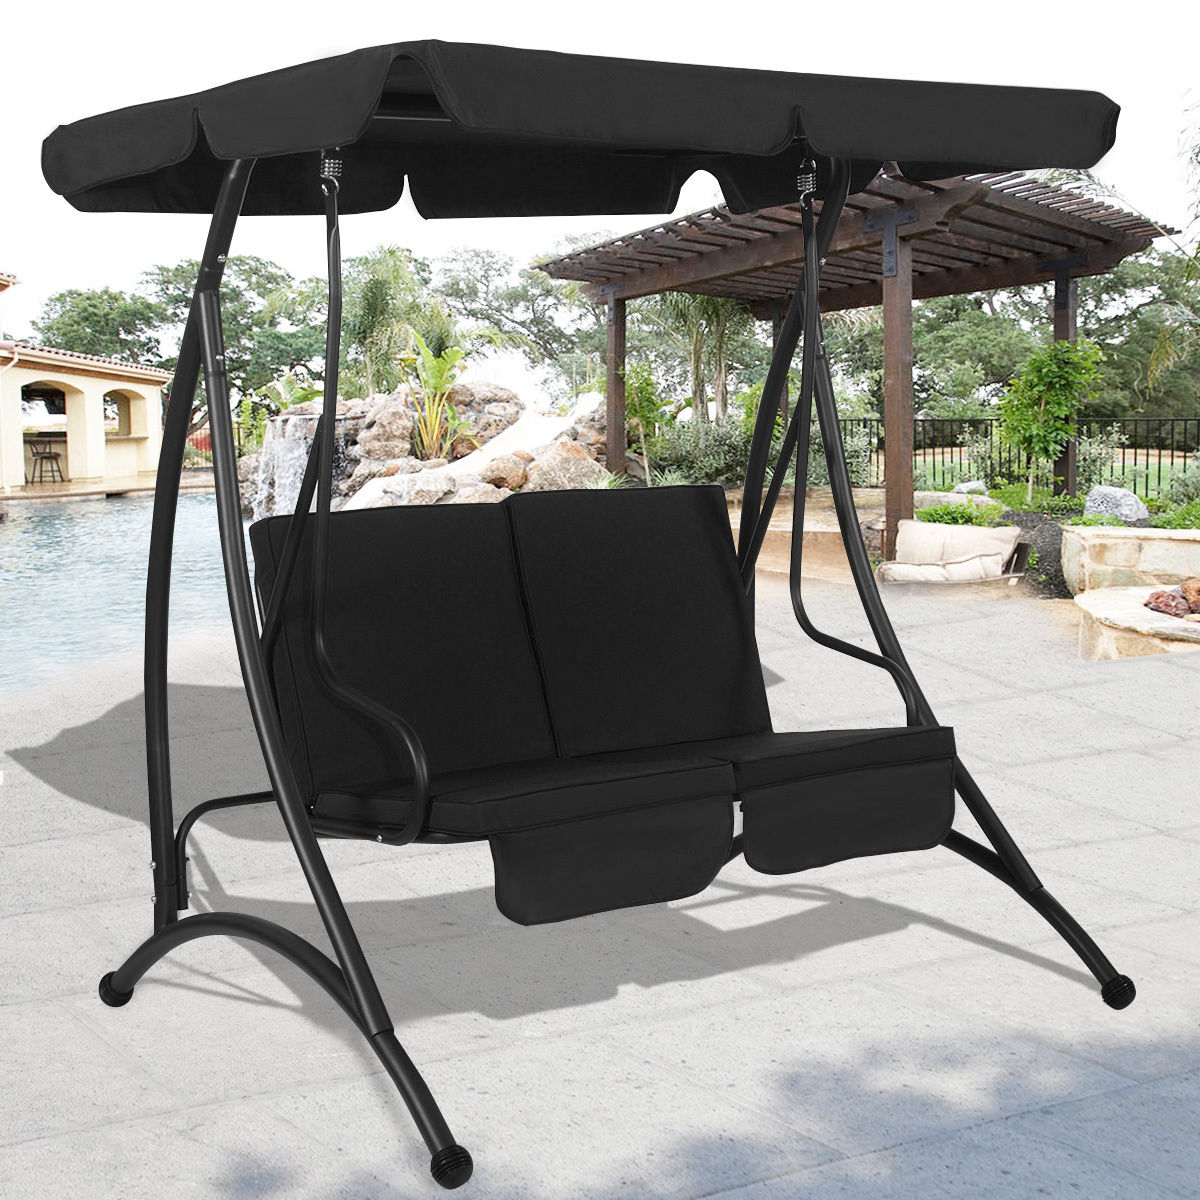 Costway Black 2 Person Canopy Swing Chair Patio Hammock Seat Cushioned Furniture Steel & Costway Black 2 Person Canopy Swing Chair Patio Hammock Seat ...